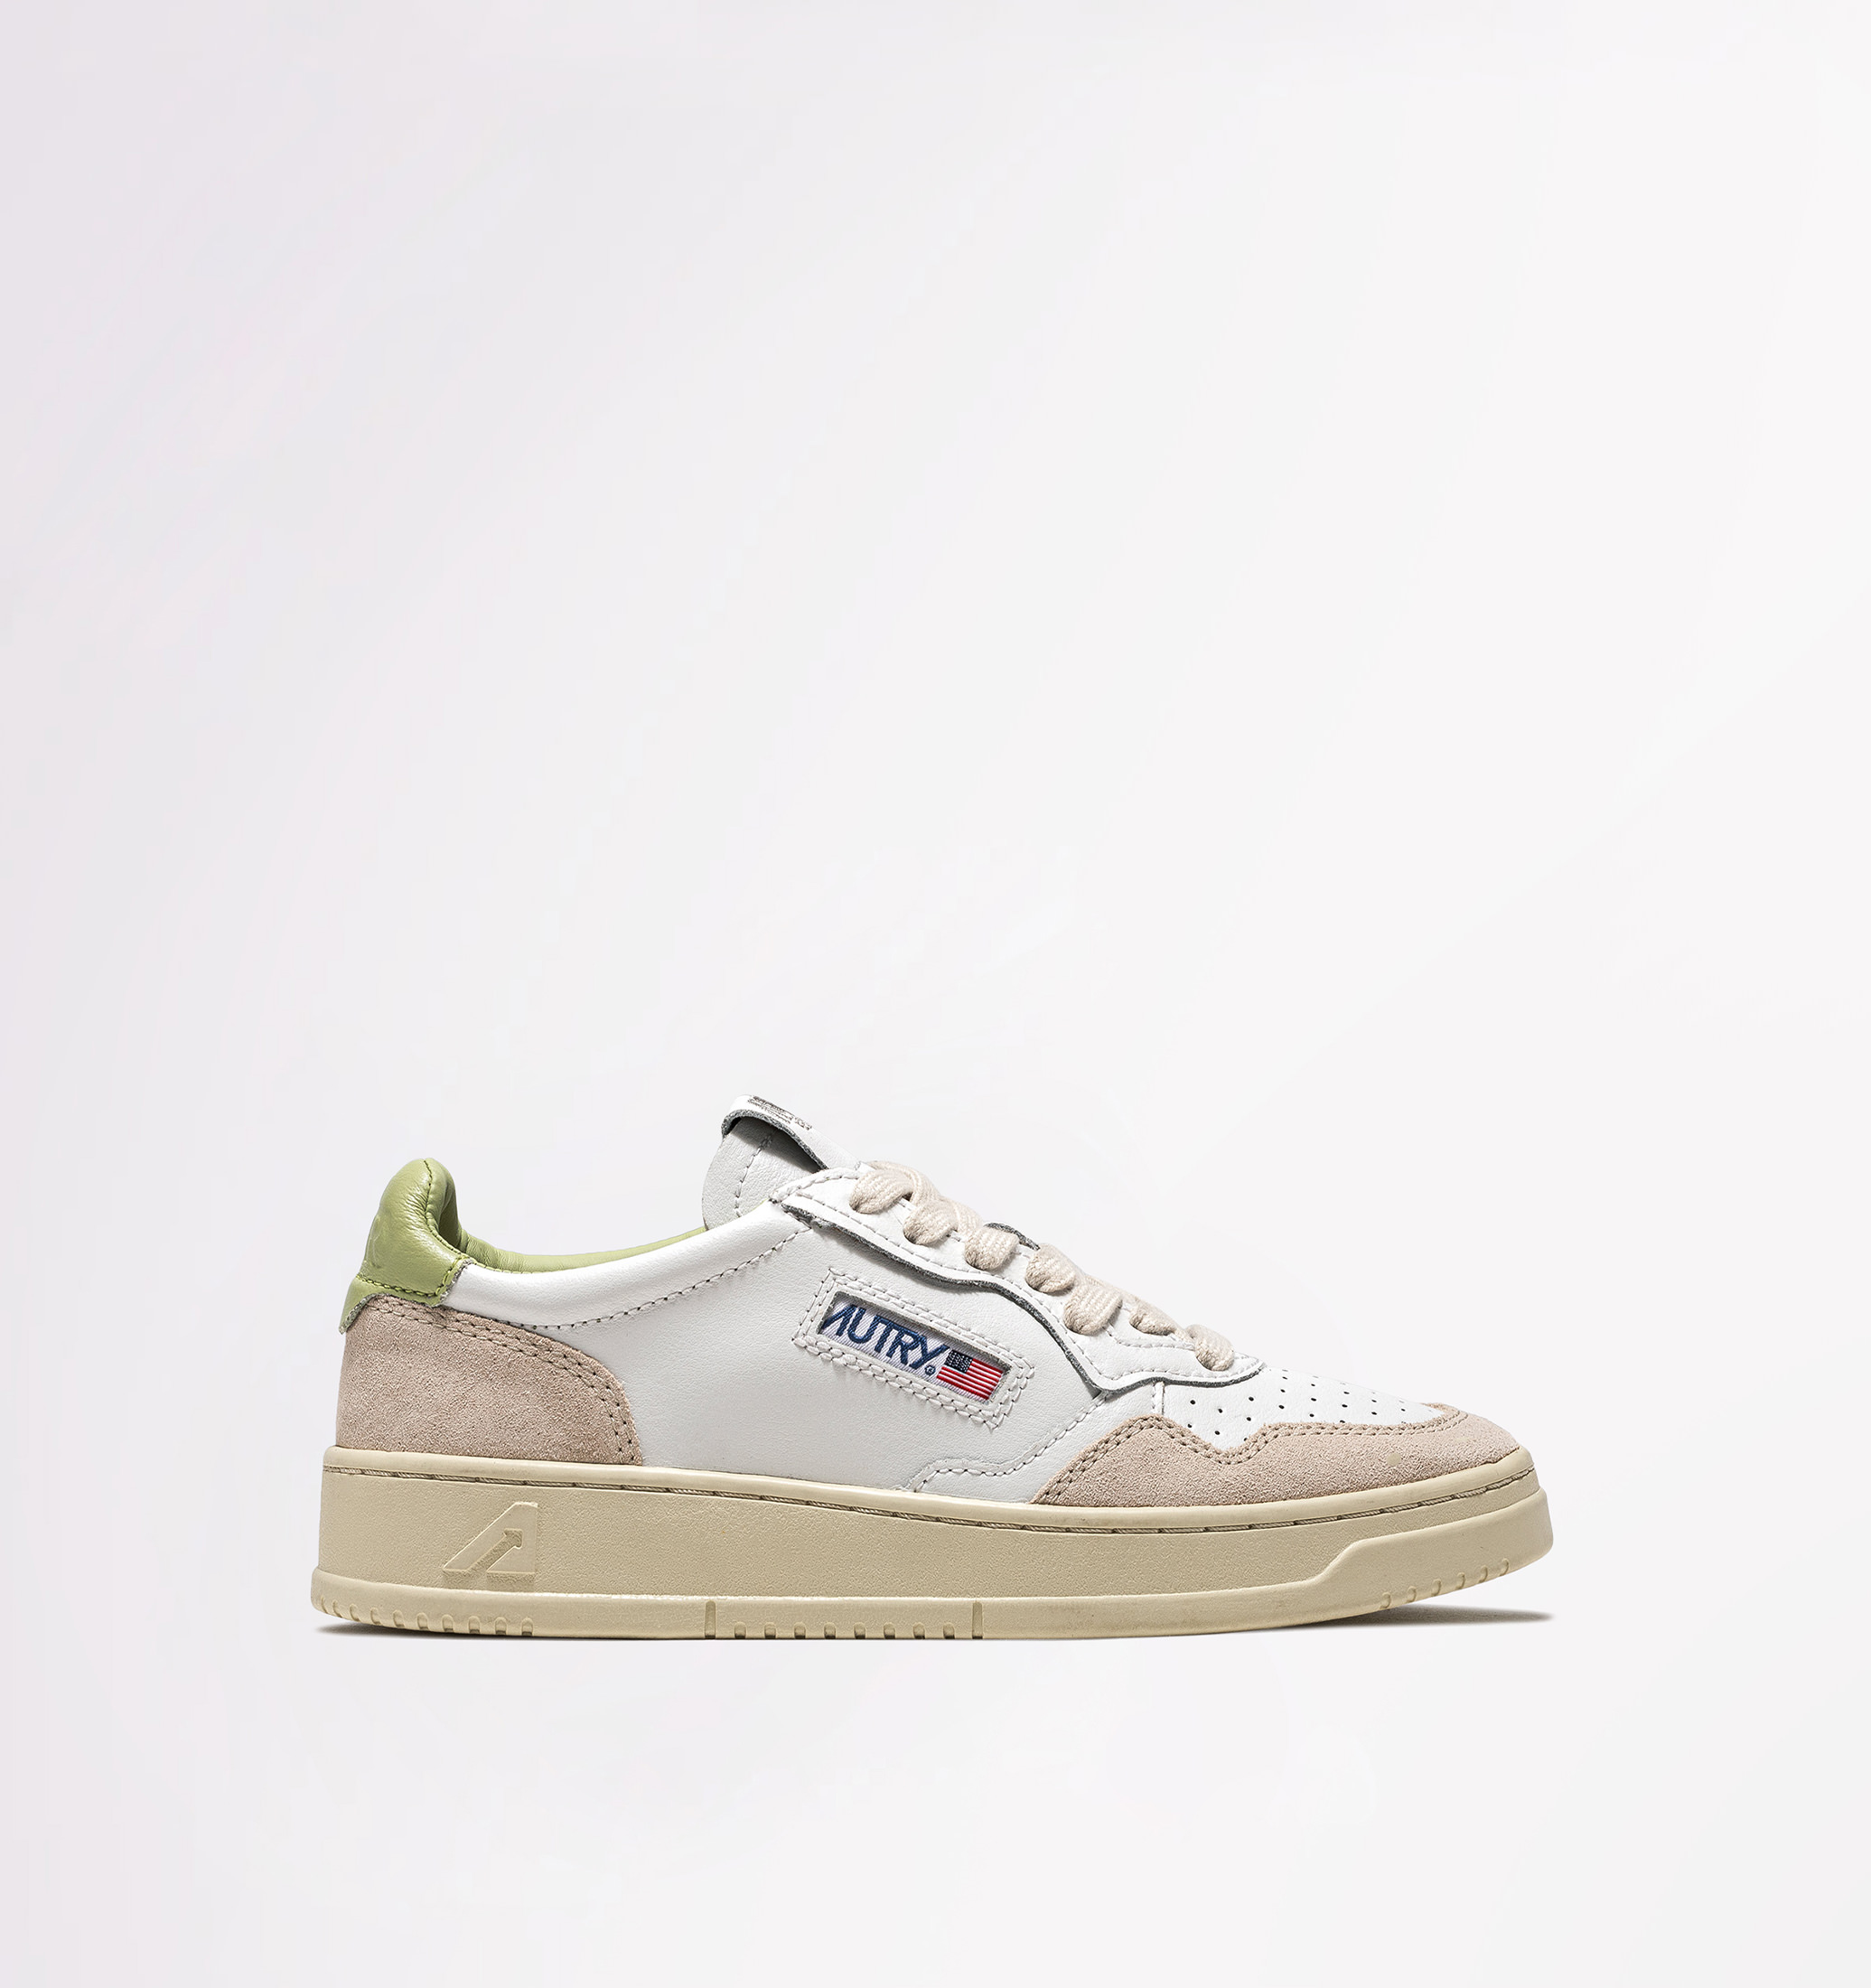 autry-01-low-leather-suede-white-nile-side